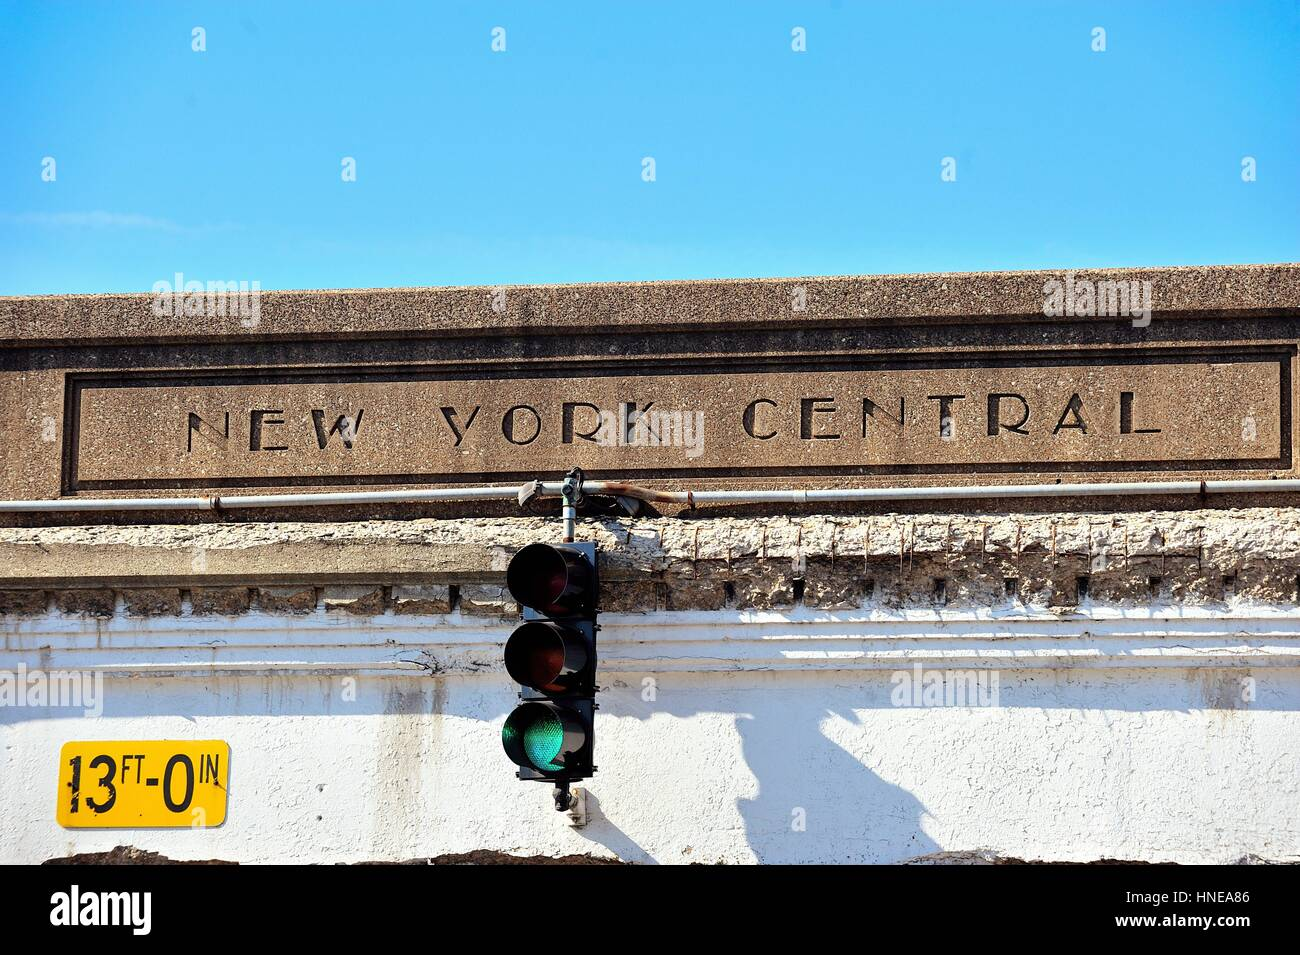 A link to a bygone era carved in concrete on a railroad overpass in Chicago's South Loop neighborhood. Chicago, - Stock Image